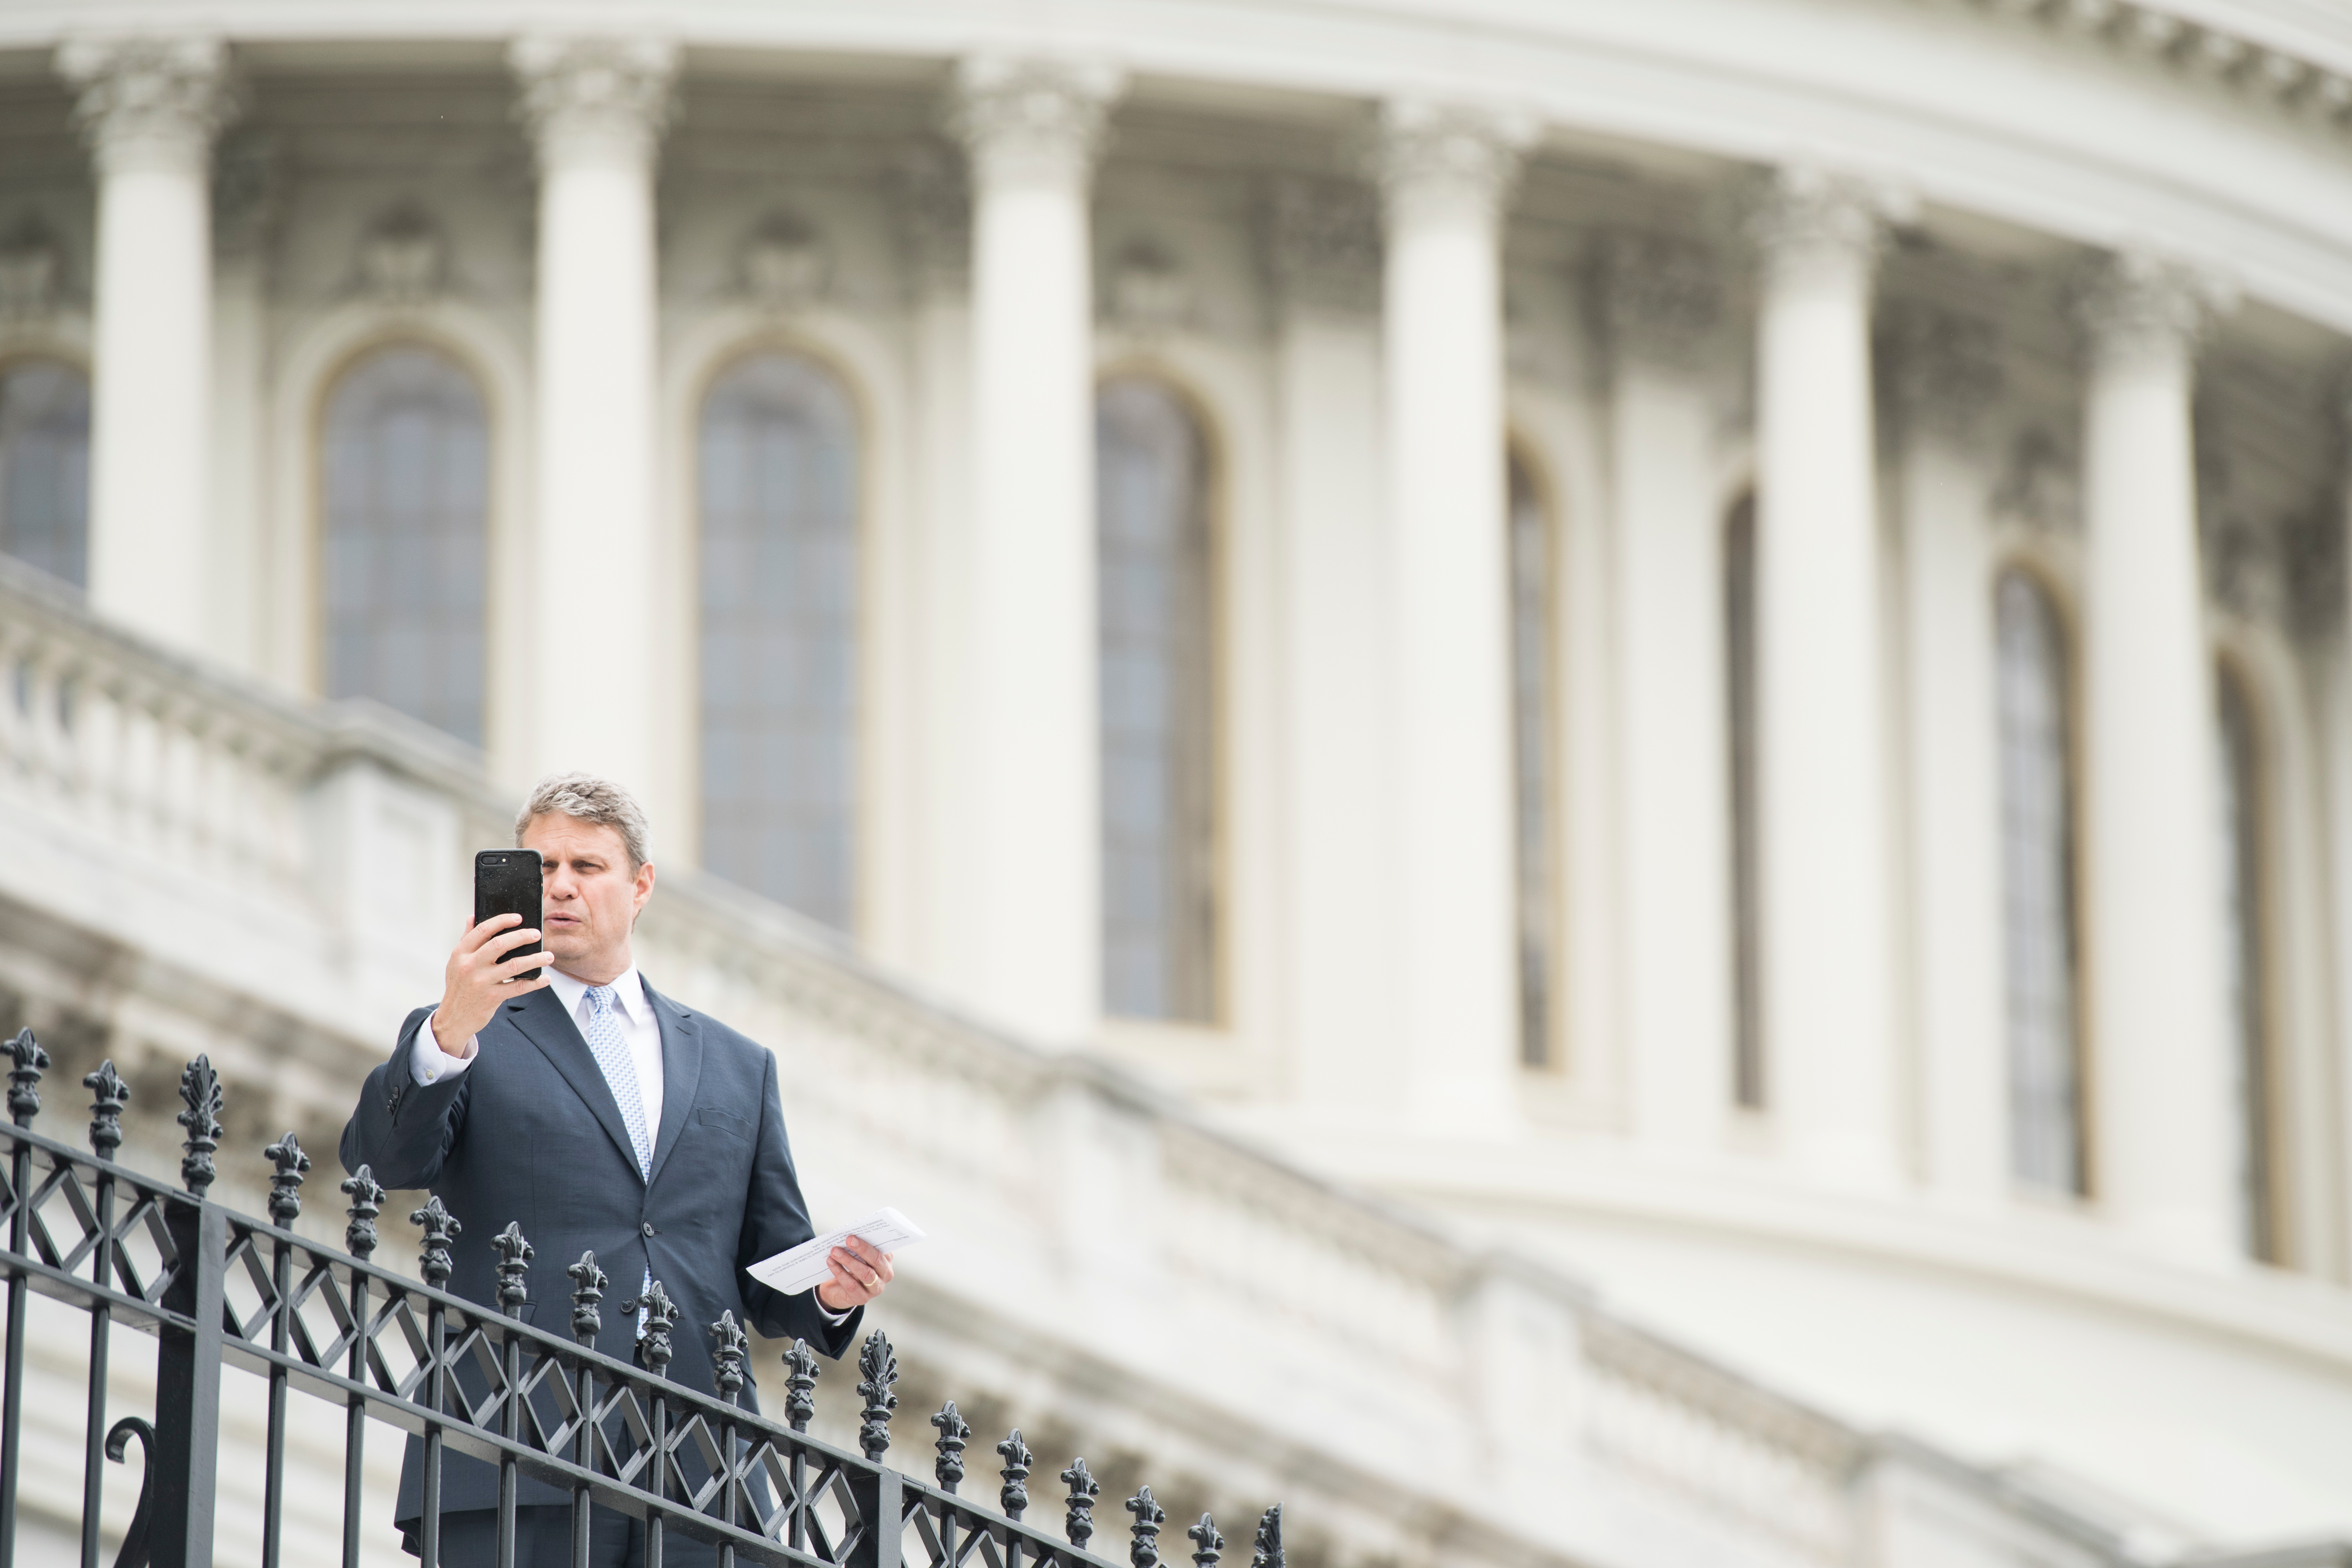 UNITED STATES - MAY 17: Rep. Bill Huizenga, R-Mich., films a selfie video outside of the Capitol in between votes on Friday, May 17, 2019. (Photo By Bill Clark/CQ Roll Call)